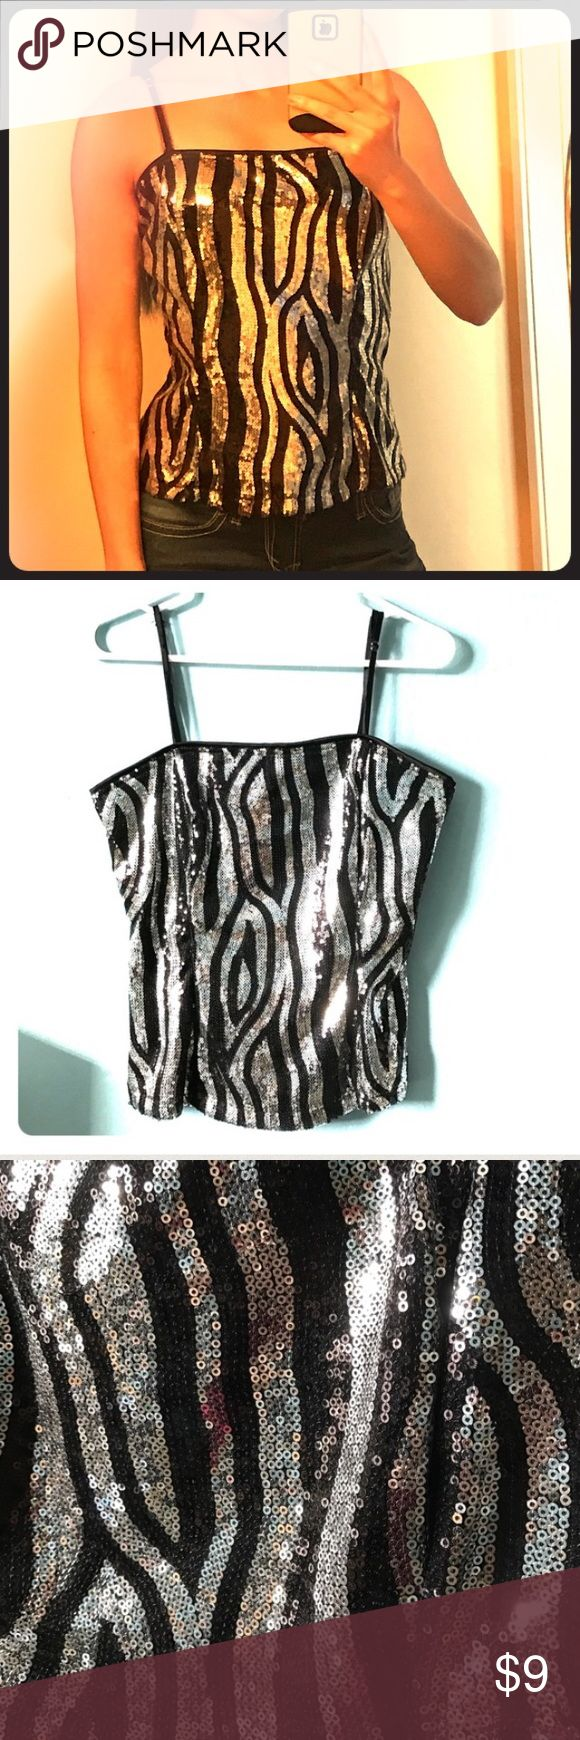 Body Central Sequin Cami Hot!  Zebra print sequined camisole by Body Central.  Adjustable spaghetti straps.  Zip back.  Worn once.  Price is firm unless bundled. Body Central Tops Camisoles